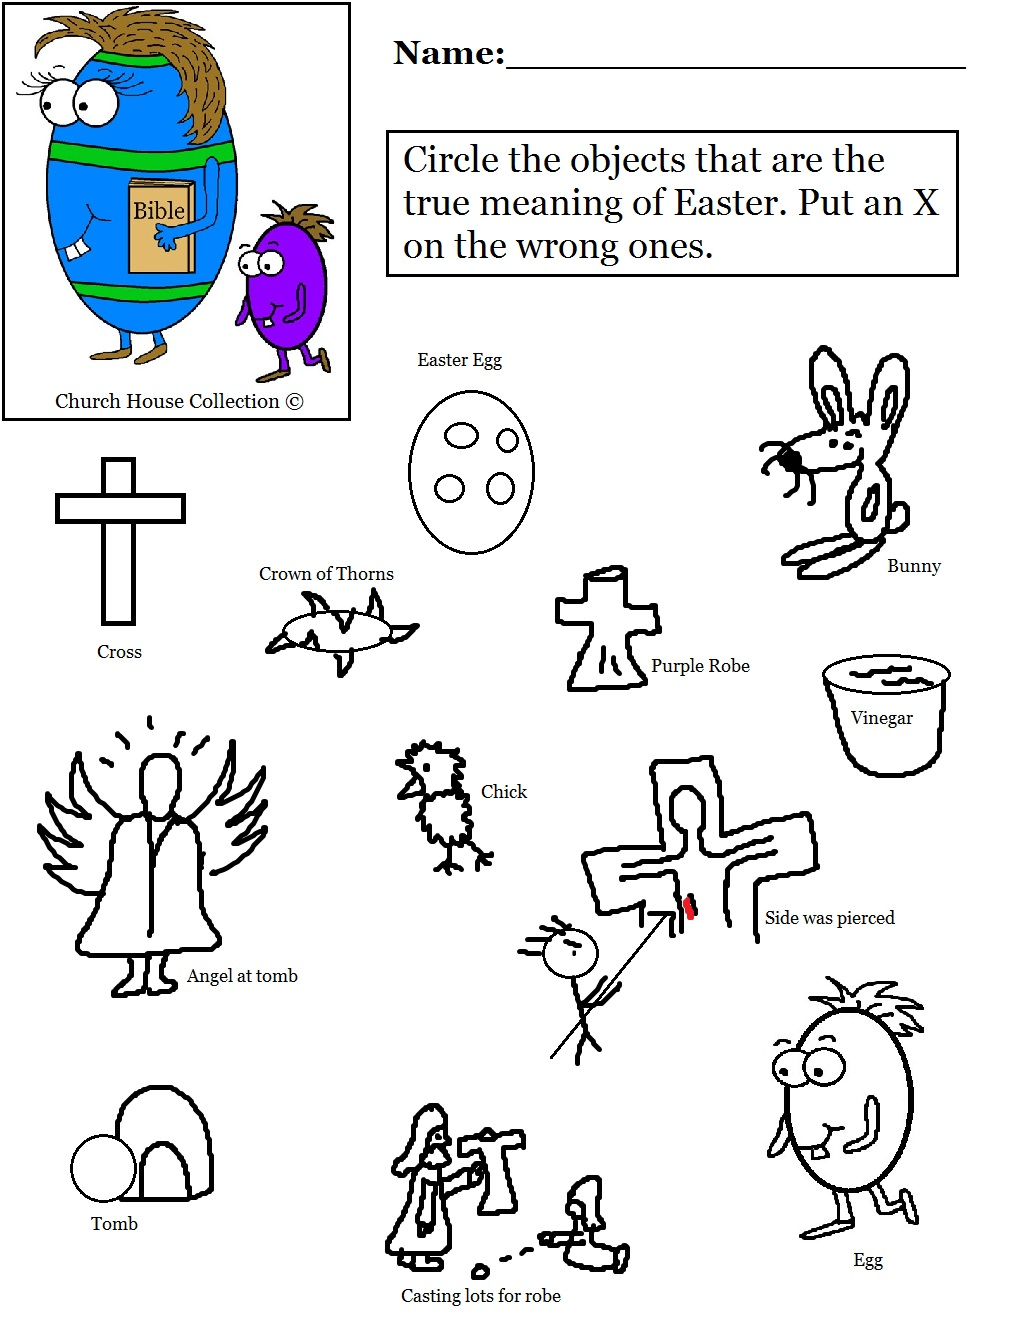 Free Worksheet Bible Story Worksheets church house collection blog easter egg with bible worksheet worksheet